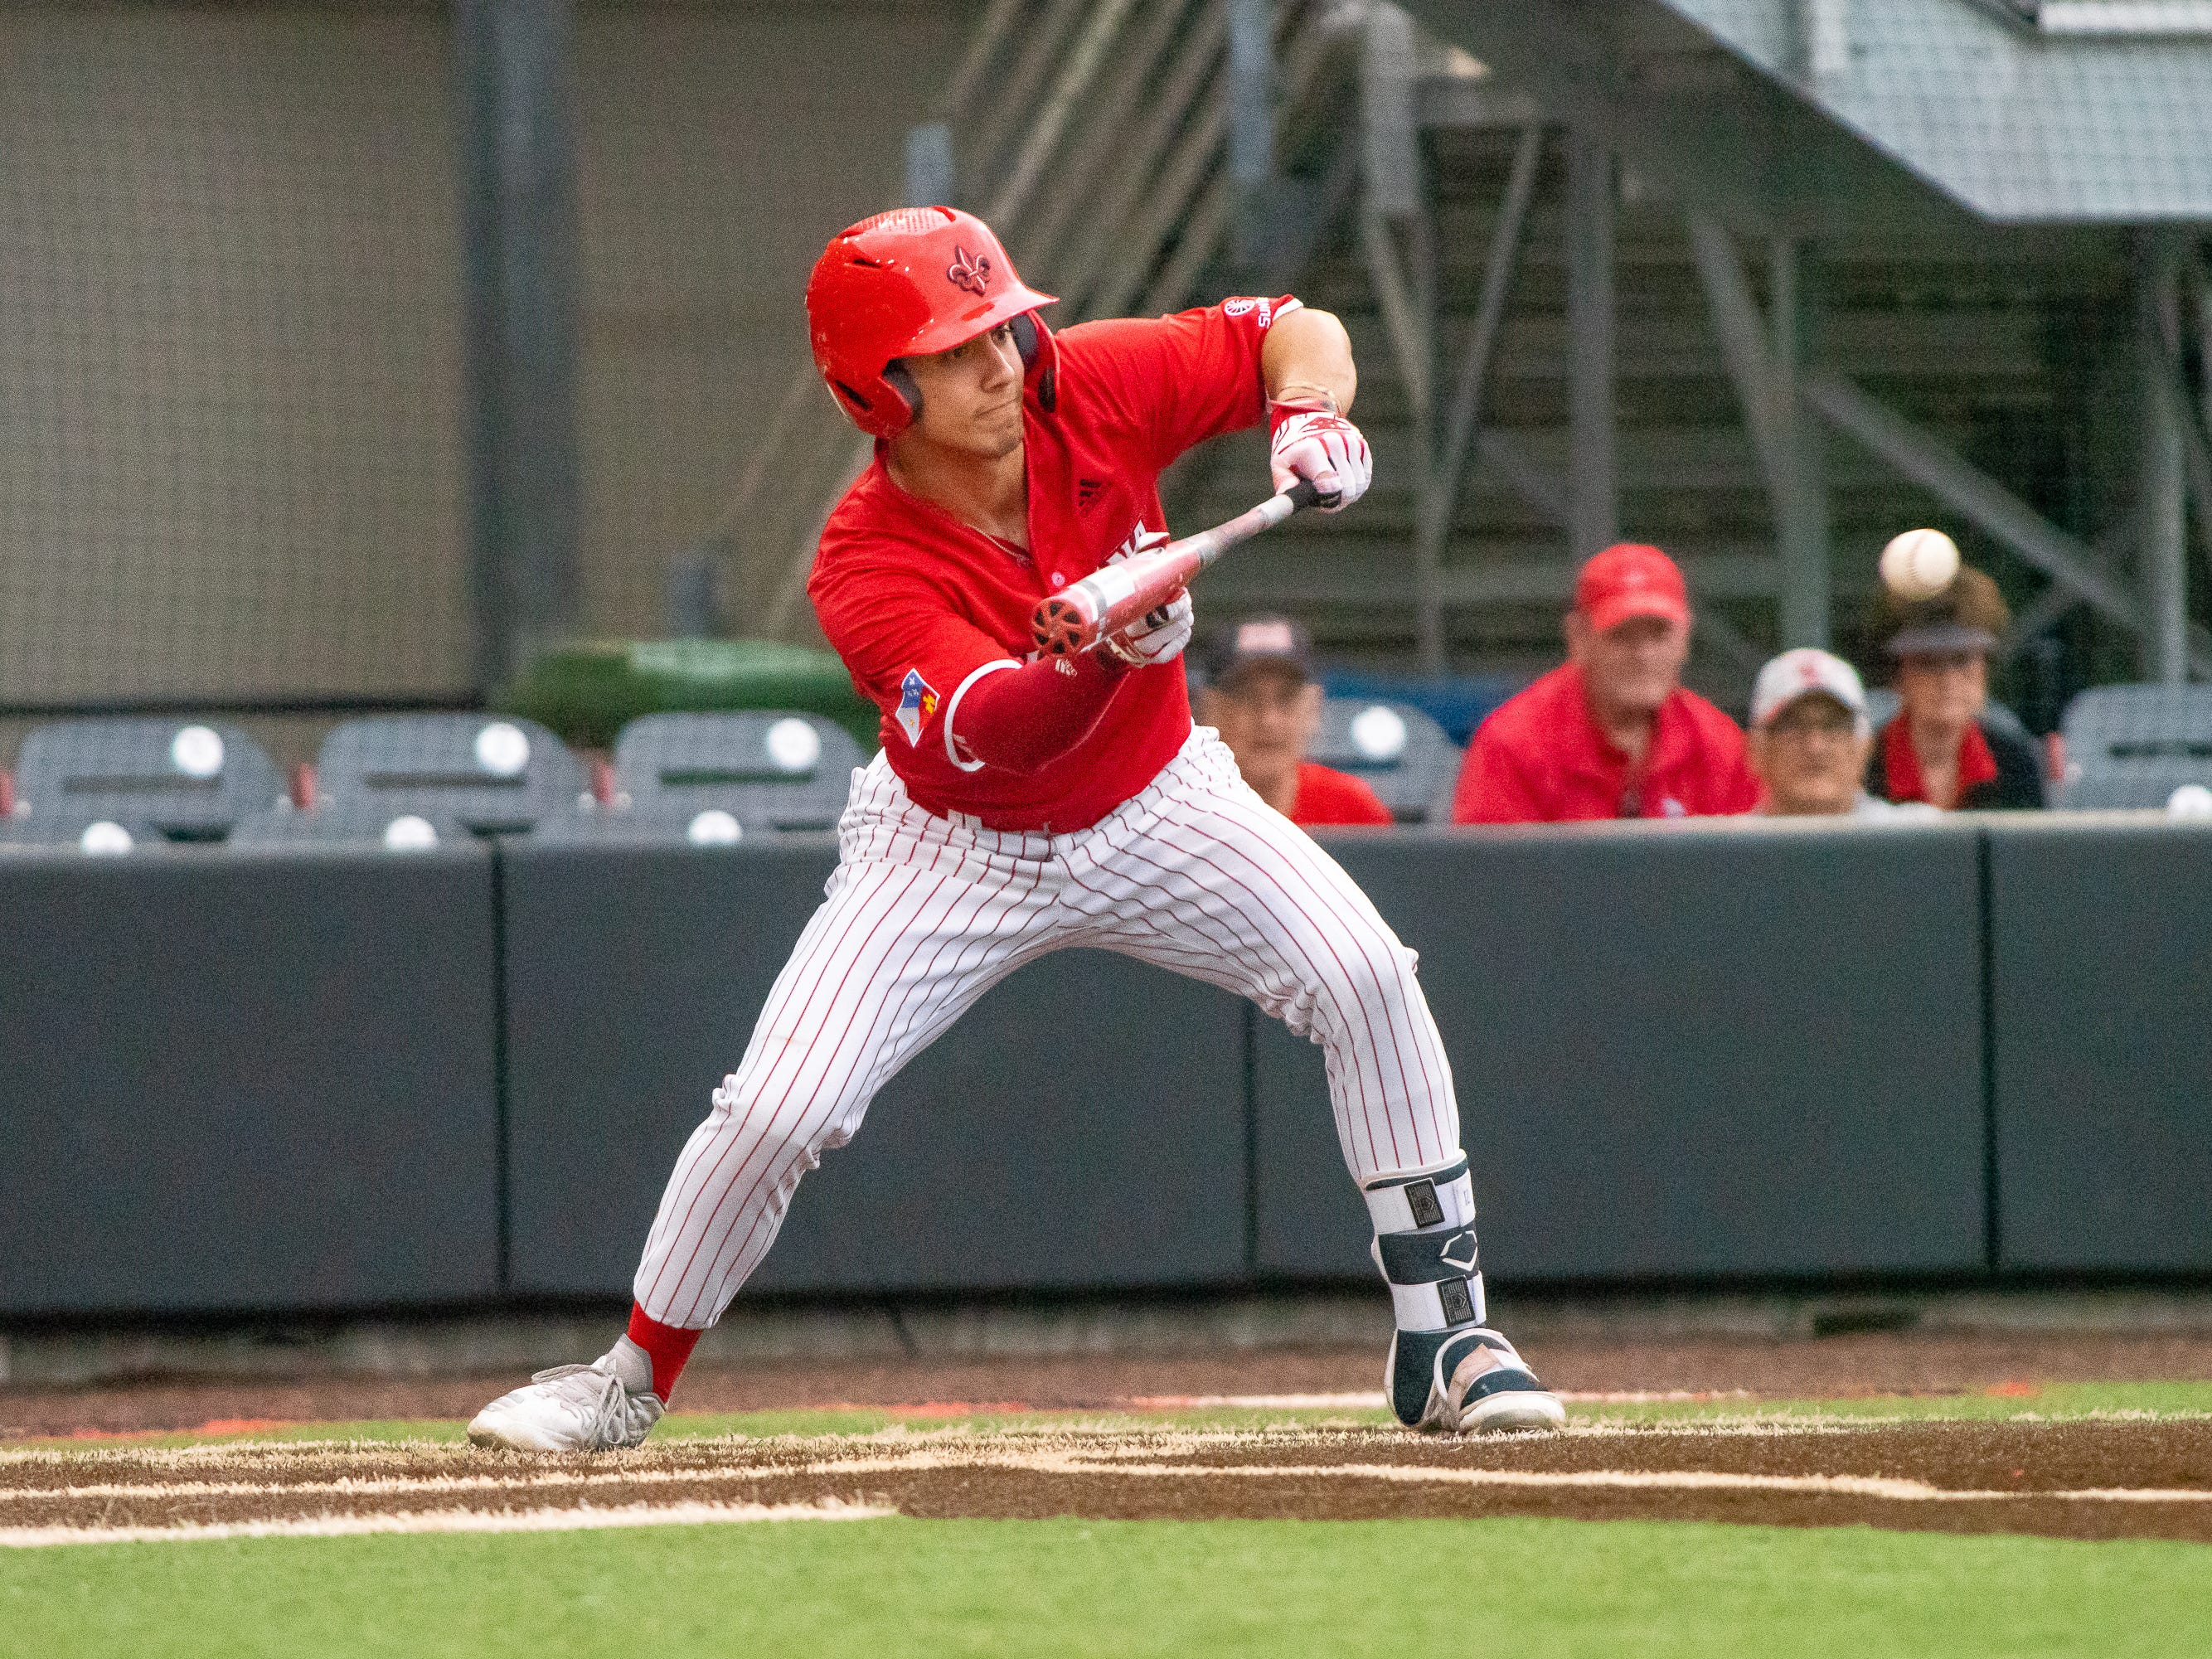 UL's Jonathan Windham prepares to bunt the ball as the Ragin' Cajuns take on the Loyola-Marymount Lions at M.L. Tigue Moore Field on Saturday, March 9, 2019.